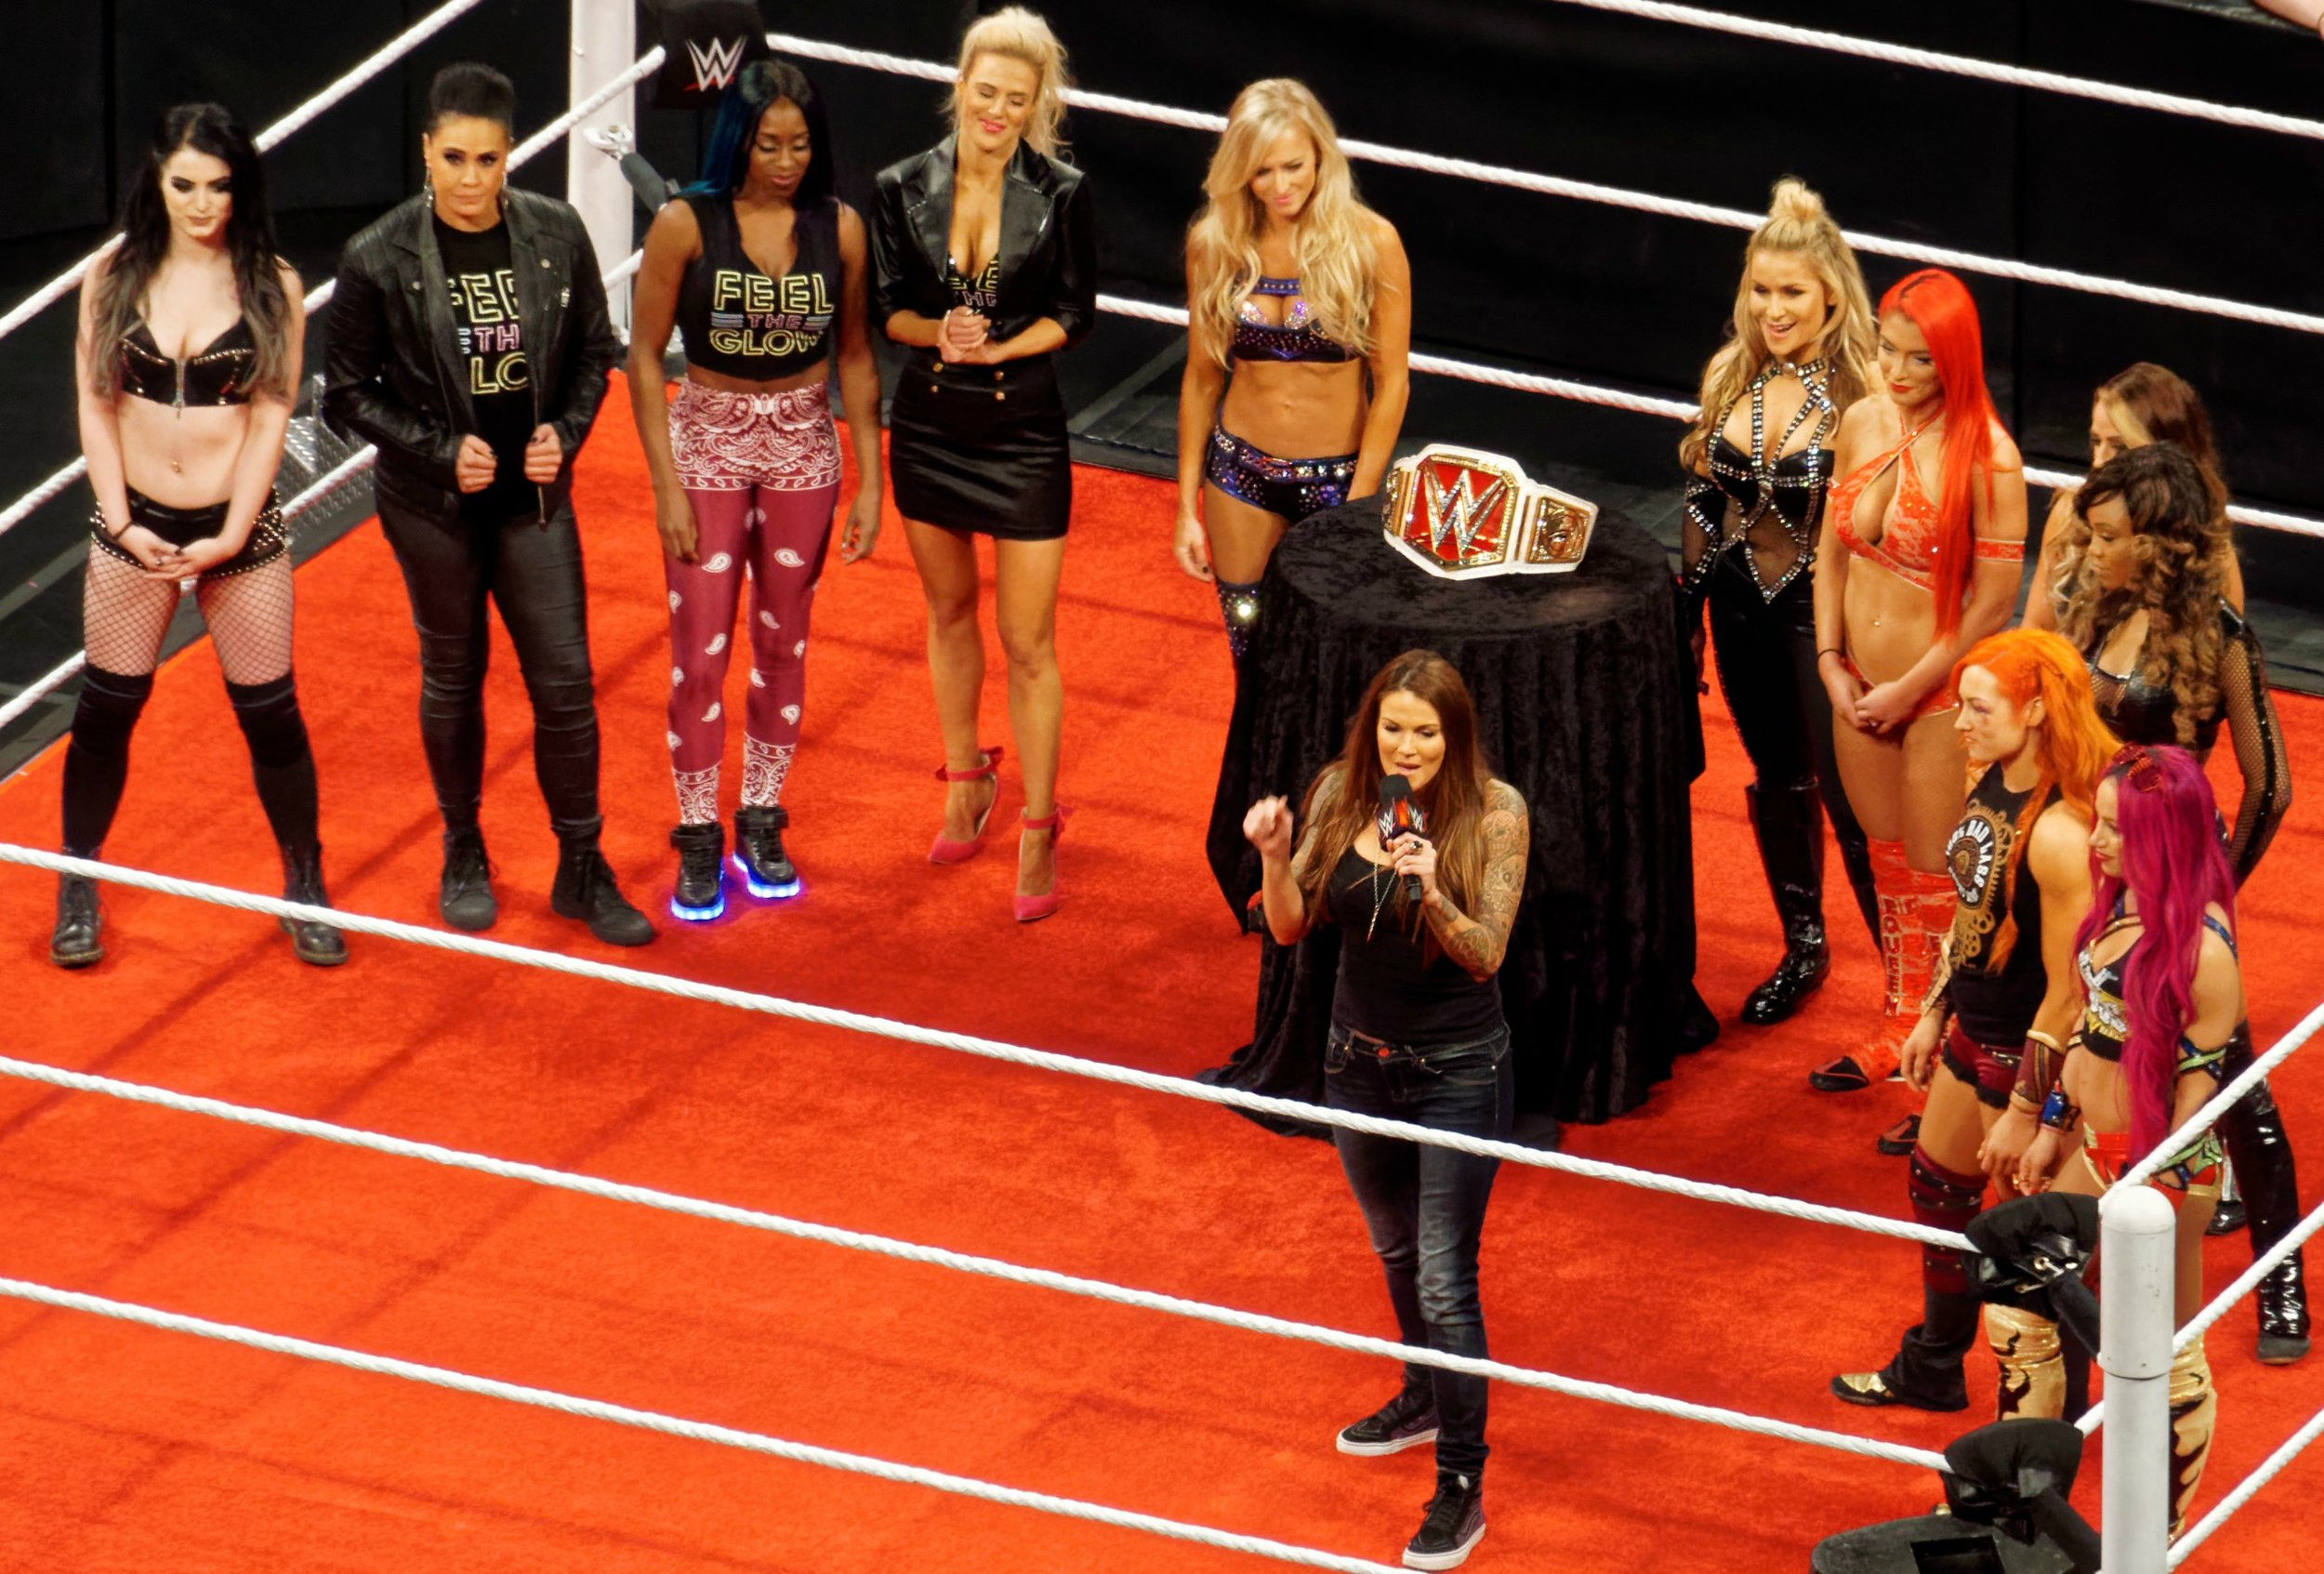 The first WWE RAW women's championship, April 2016. Photo by Miguel Discart via Wikimedia Commons.